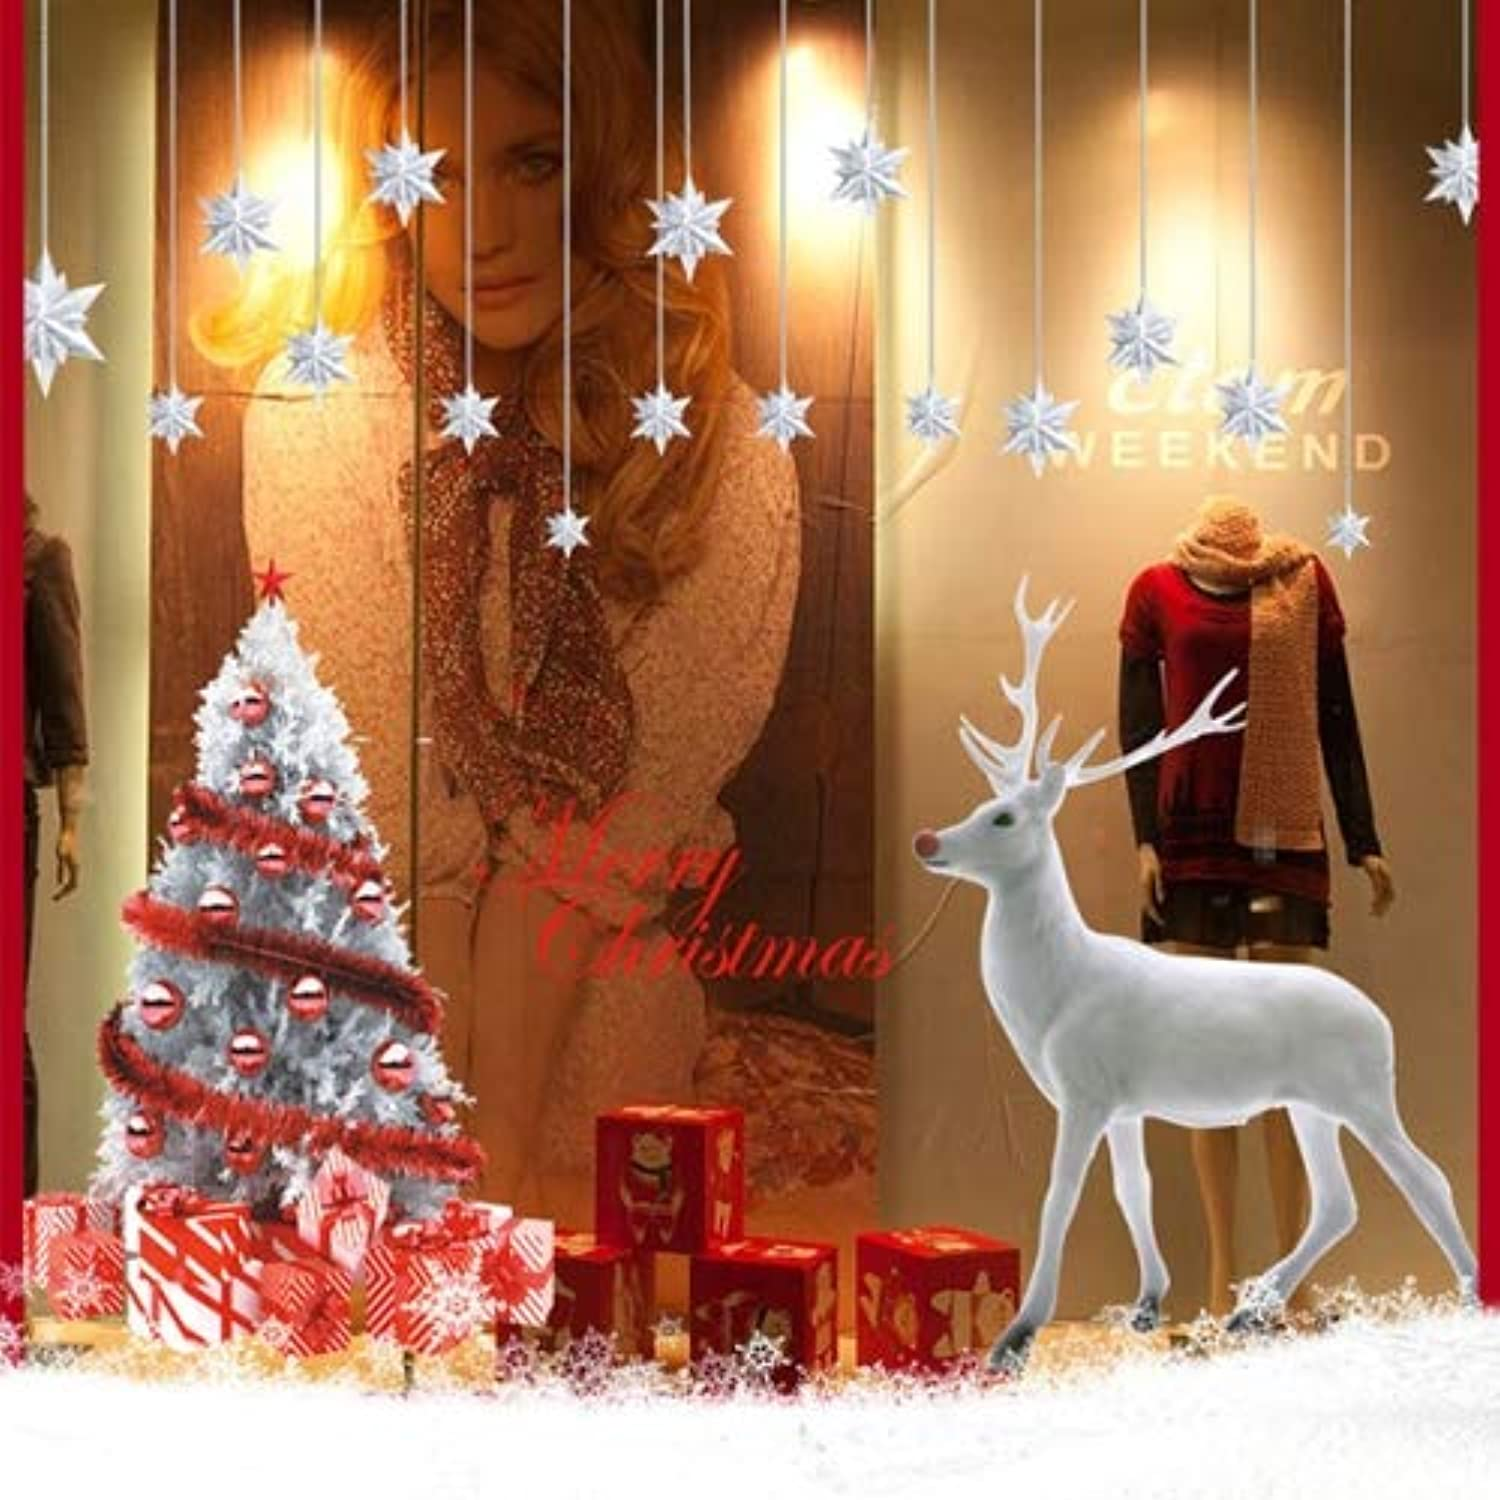 Christmas Snowman Snowflake Elk Stores Showcase Glass Removable Stickers Festival Wall Stickers Decoration, Size  60 x 90 x 2cm